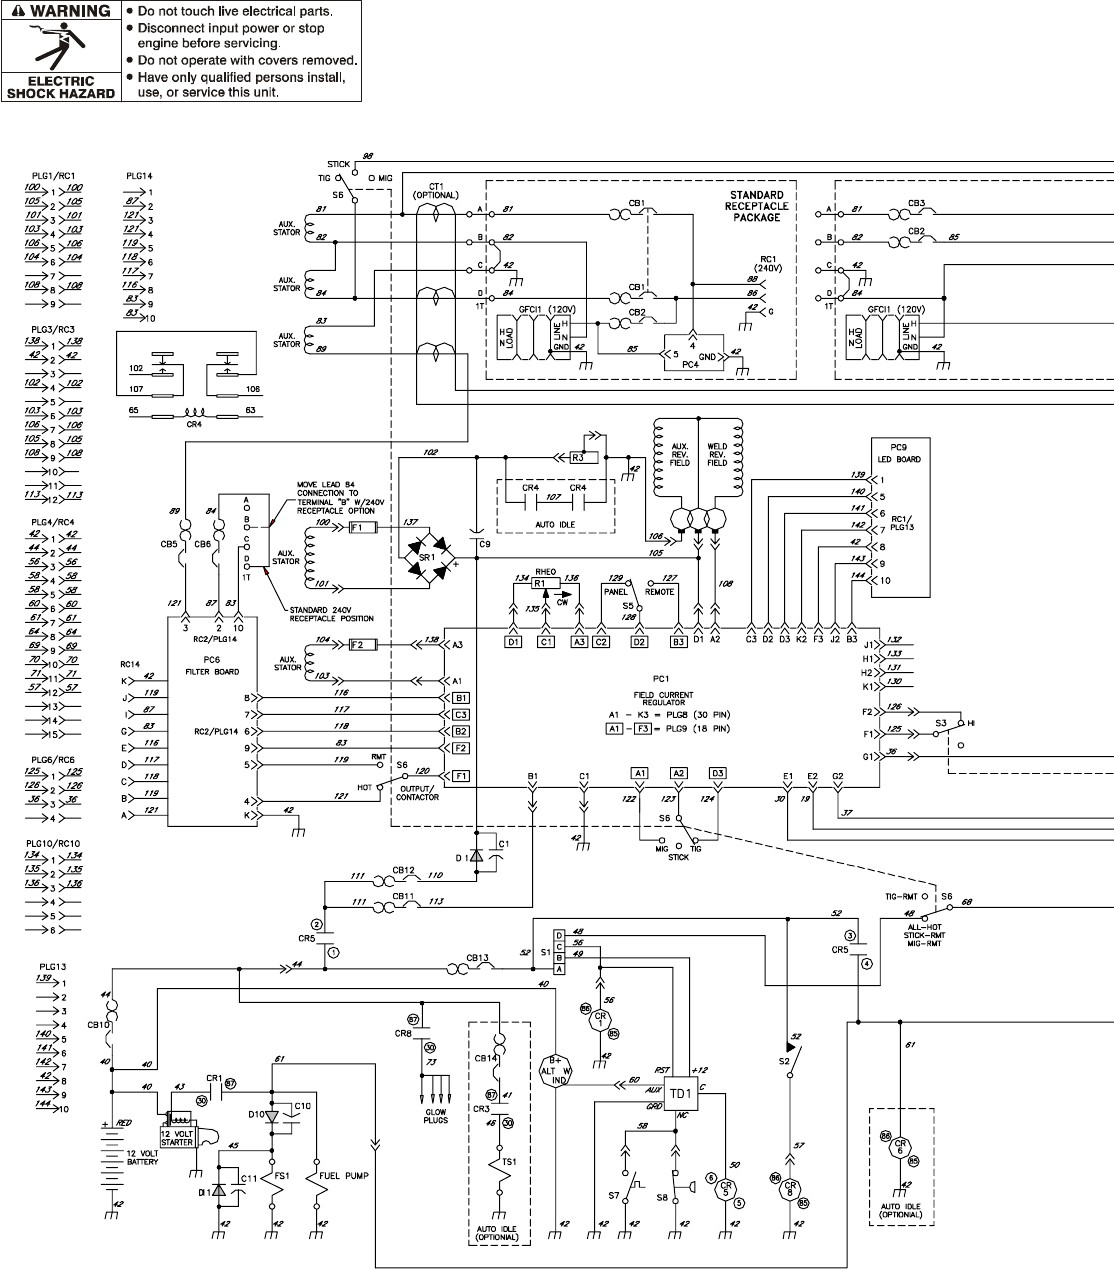 medium resolution of  lincoln for sa 200 wiring schematic lincoln welder sa 200 wiring diagram lincoln sae wiring diagram